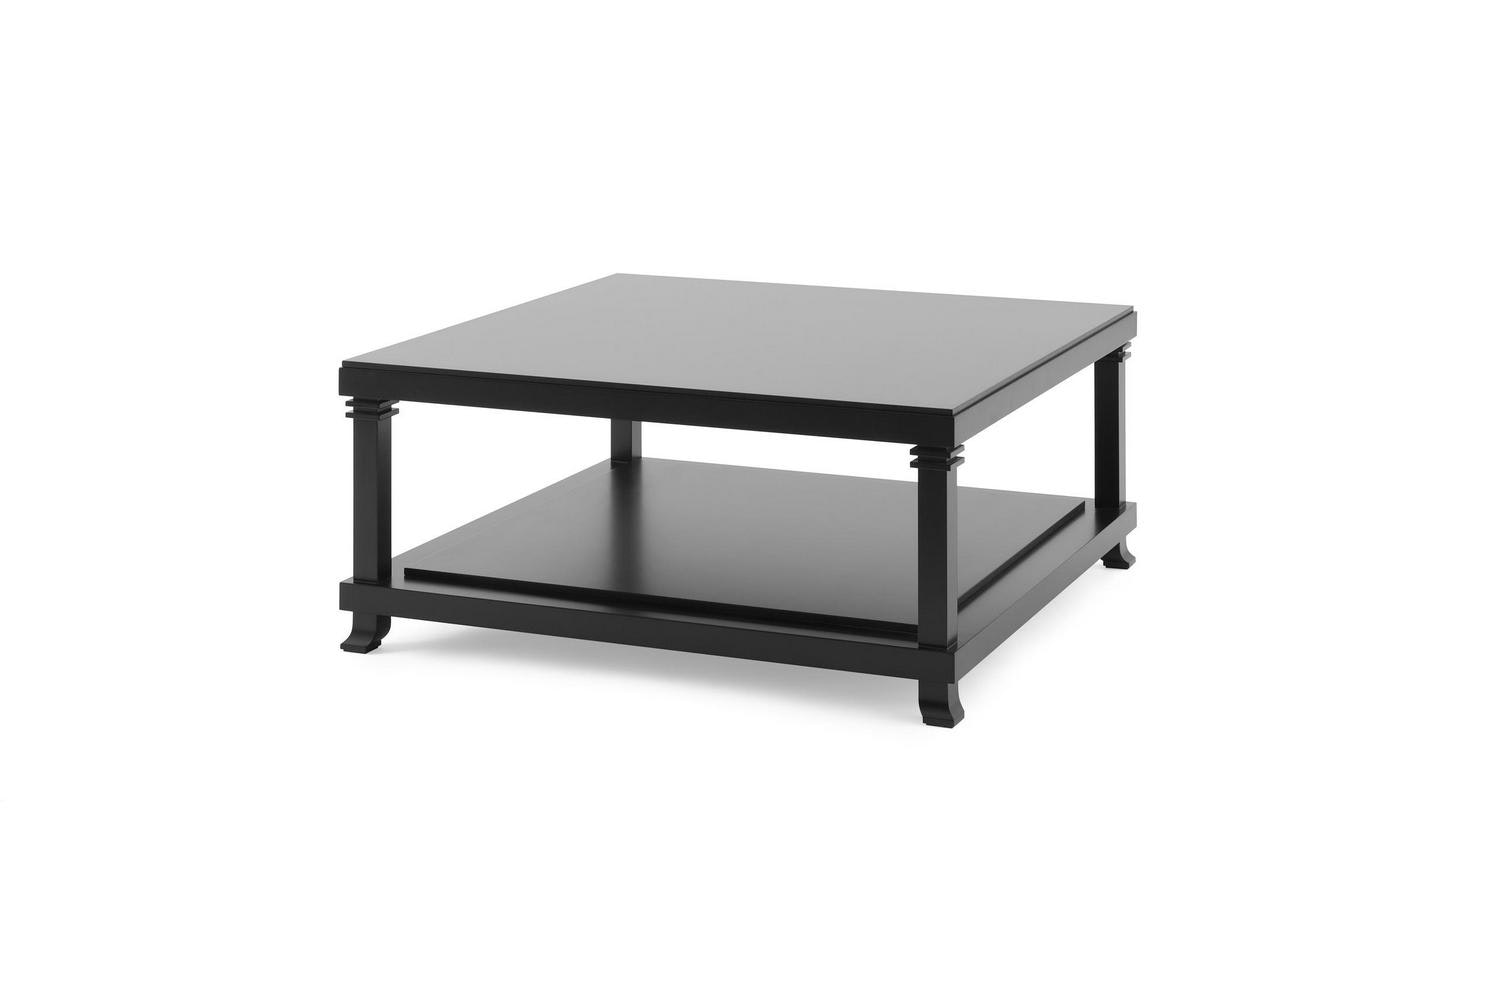 610 Robie 2 Coffee Table by Frank Lloyd Wright for Cassina